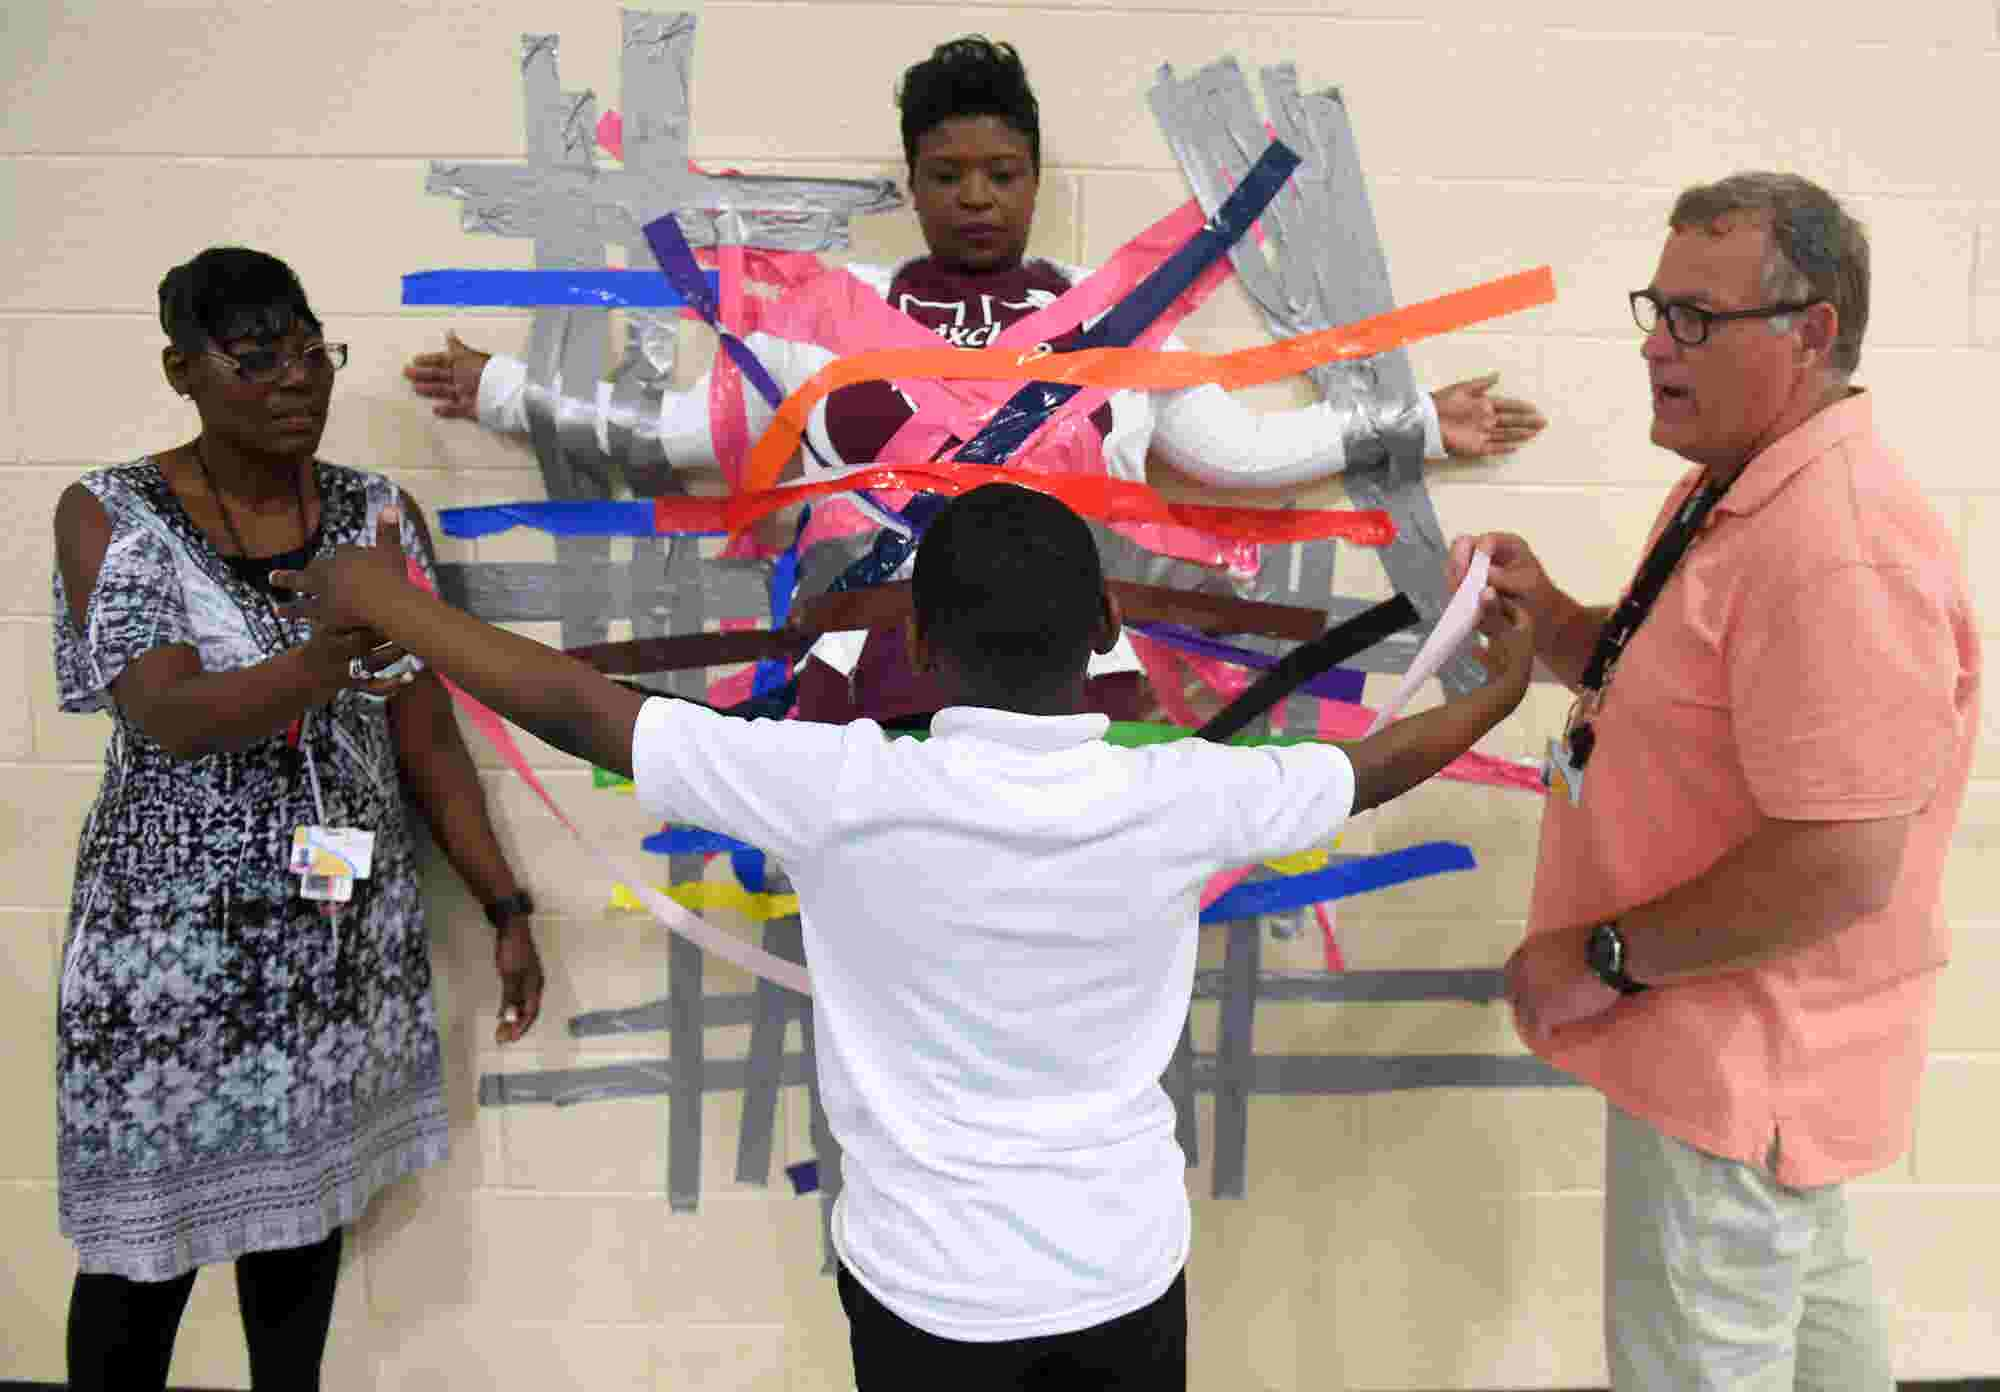 Andrew Jackson Tapes Principal To Wall Helps Relay For Life